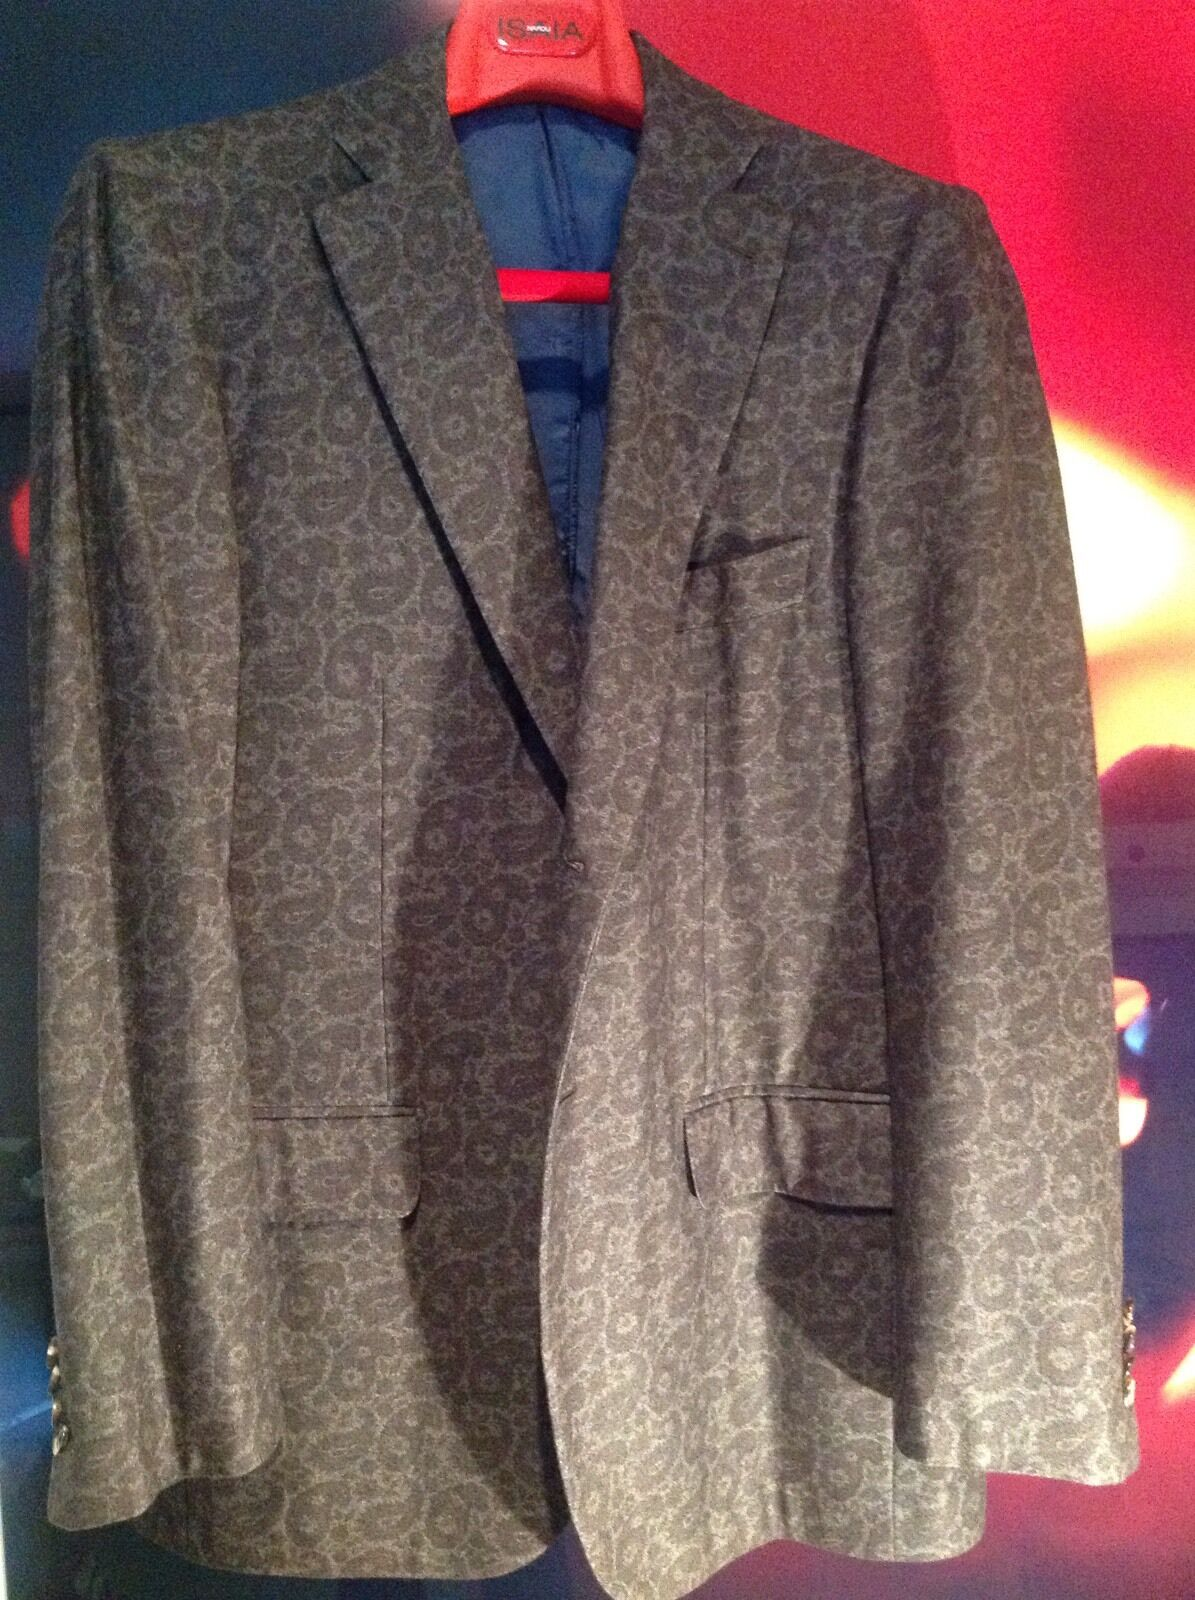 ISAIA NAPOLI - TWO BUTTON SUPER 100's BROWN GREY PAISLEY SPORT COAT SIZE 50R